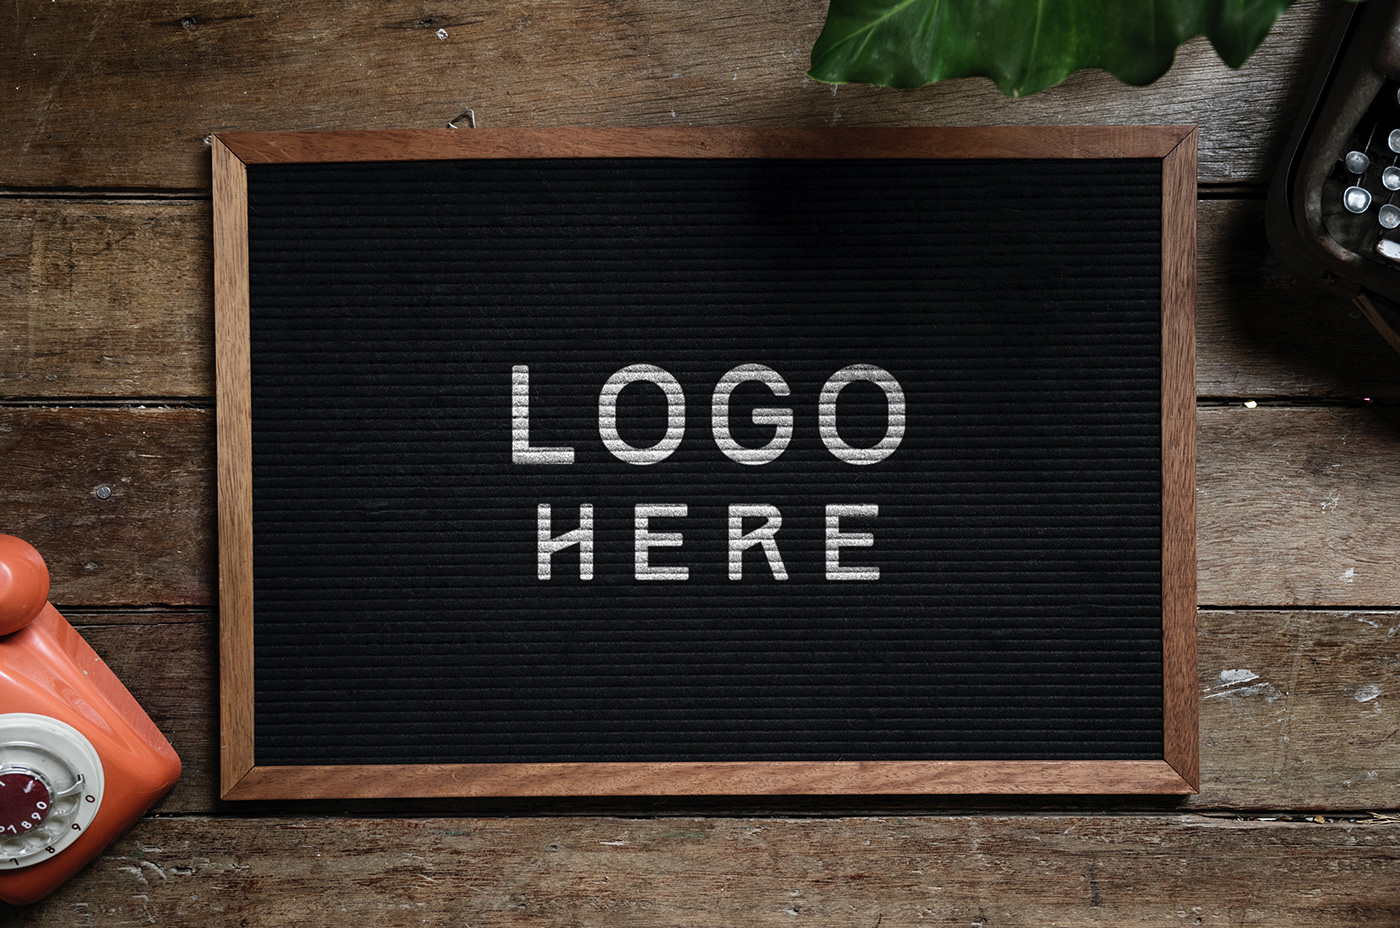 logo,Mockup,free,psd,FREEPSD,graphic,photoshop,design